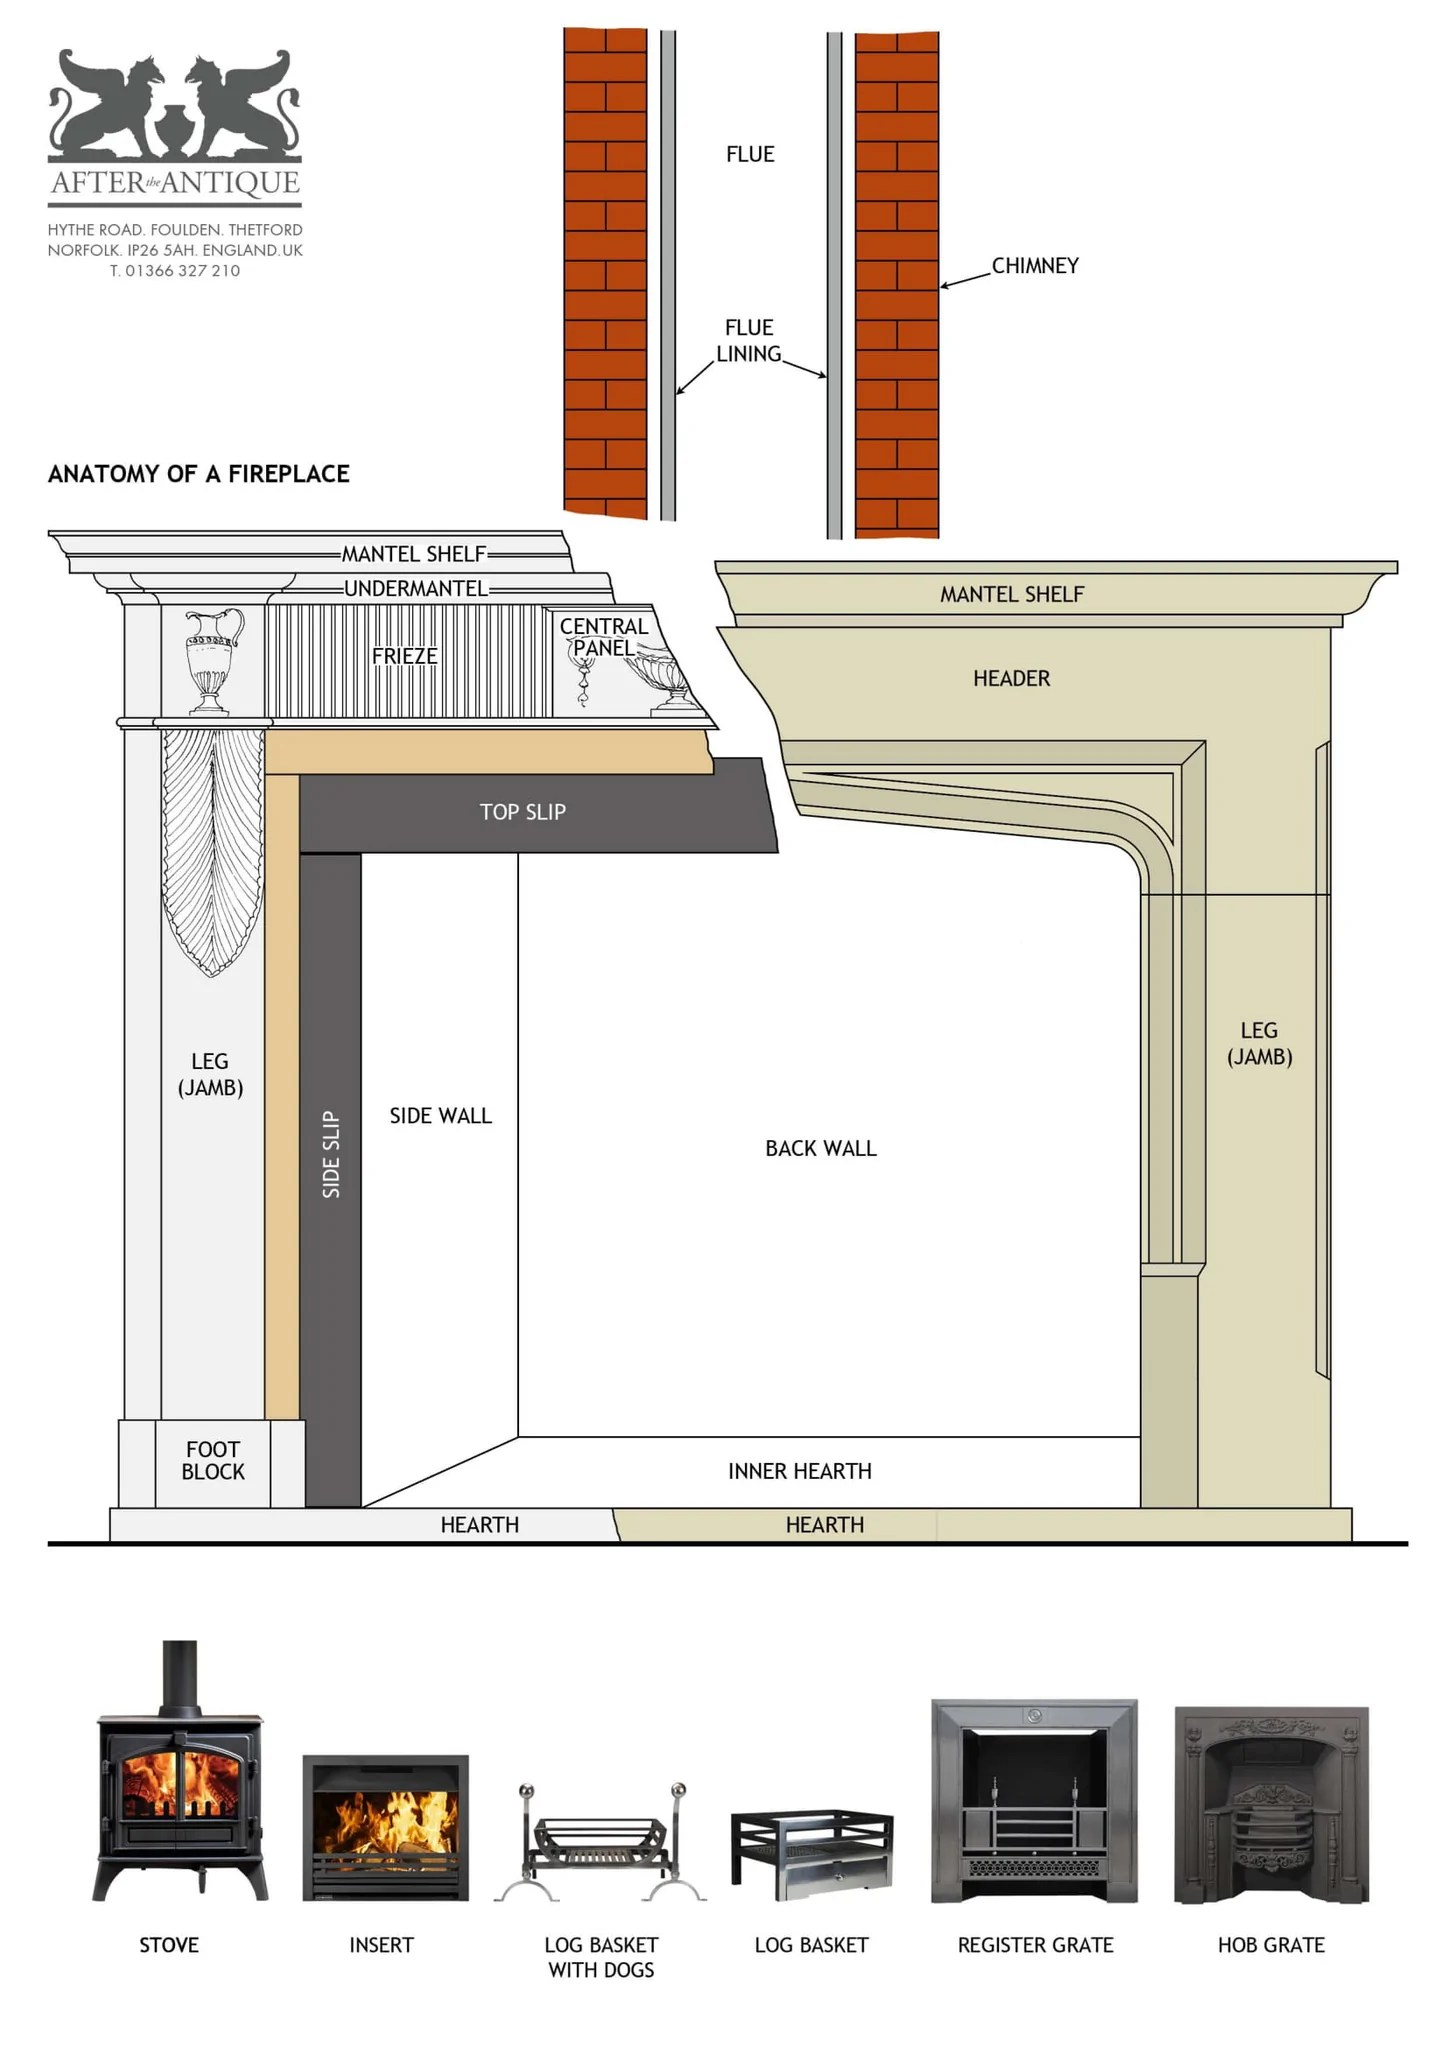 small resolution of anatomy of a fireplace download